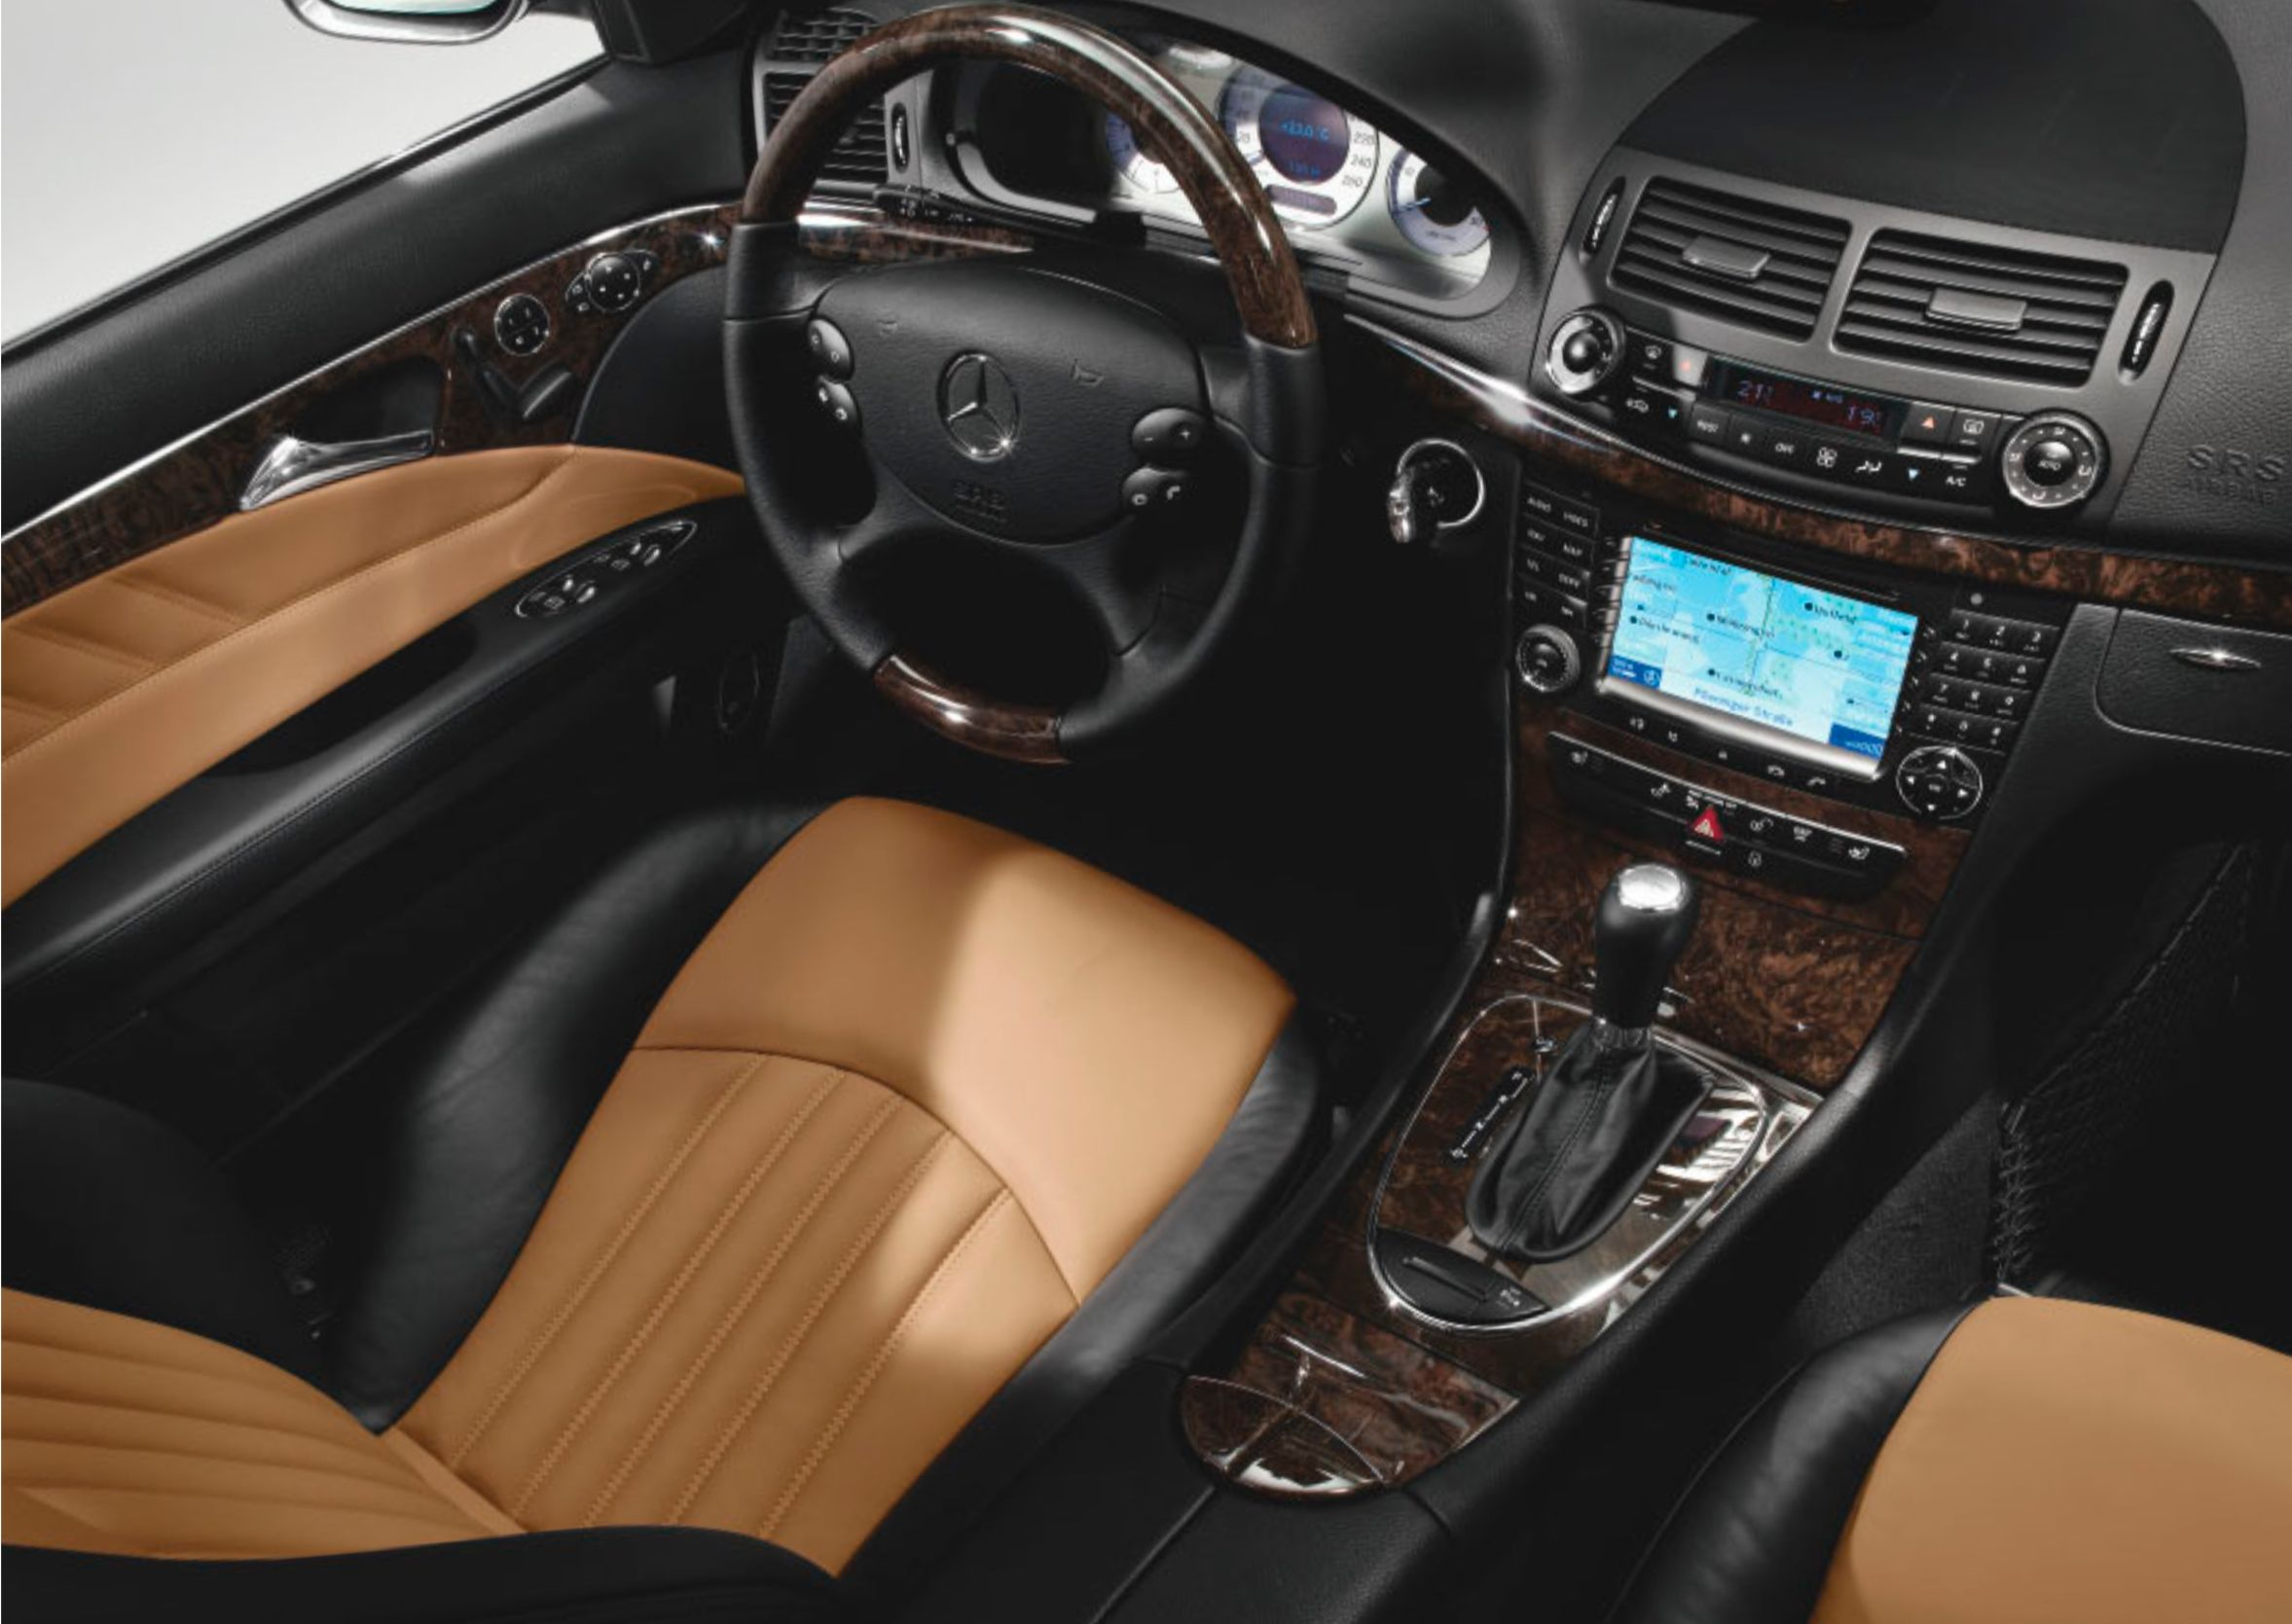 Mercedes W211 E Class Interior In 2020 With Images Mercedes